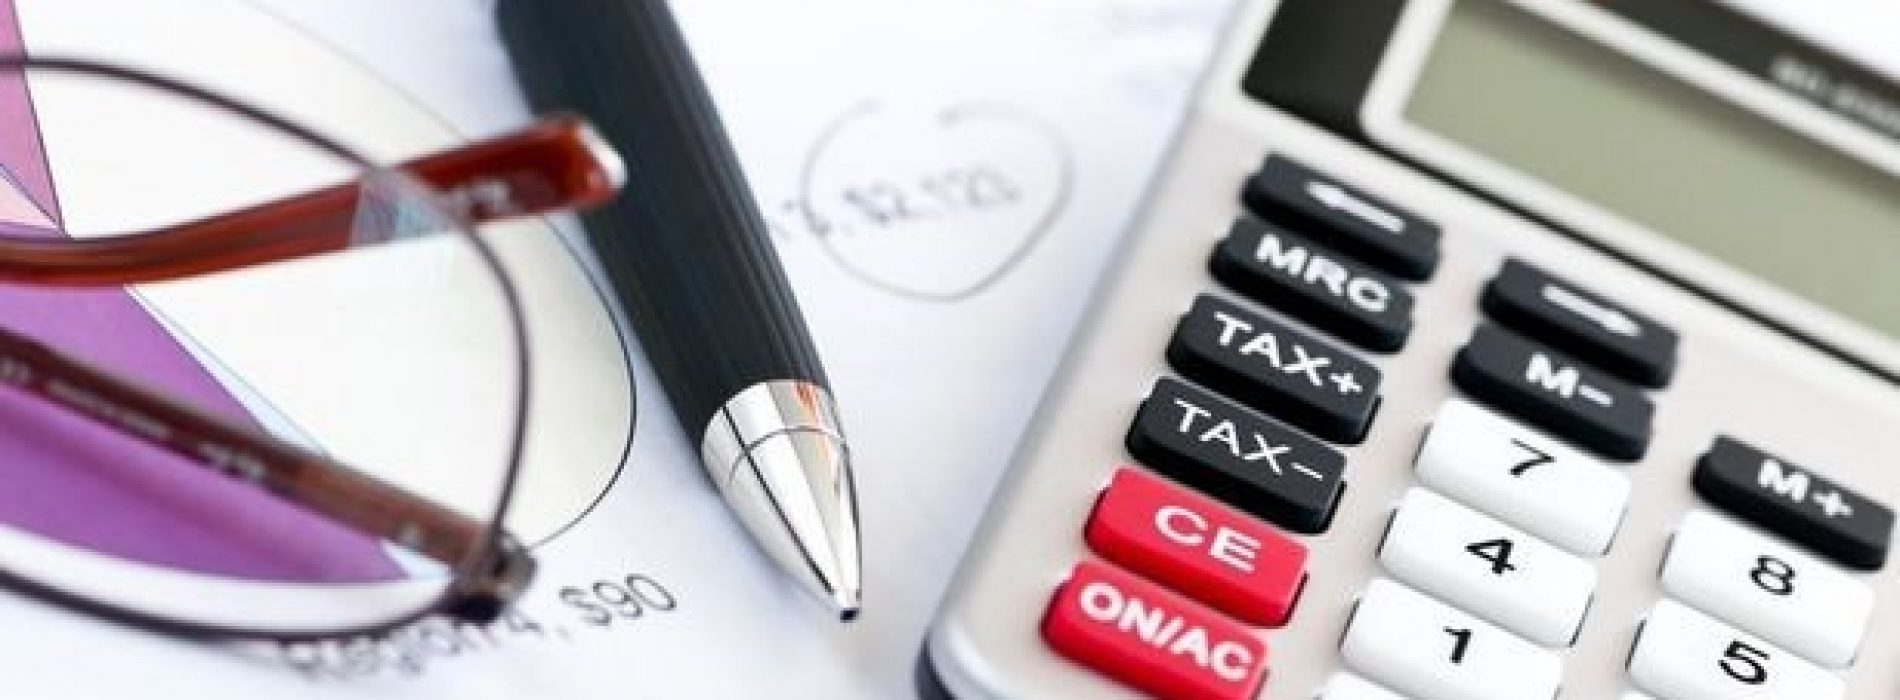 How Can Tax Calculators Help?